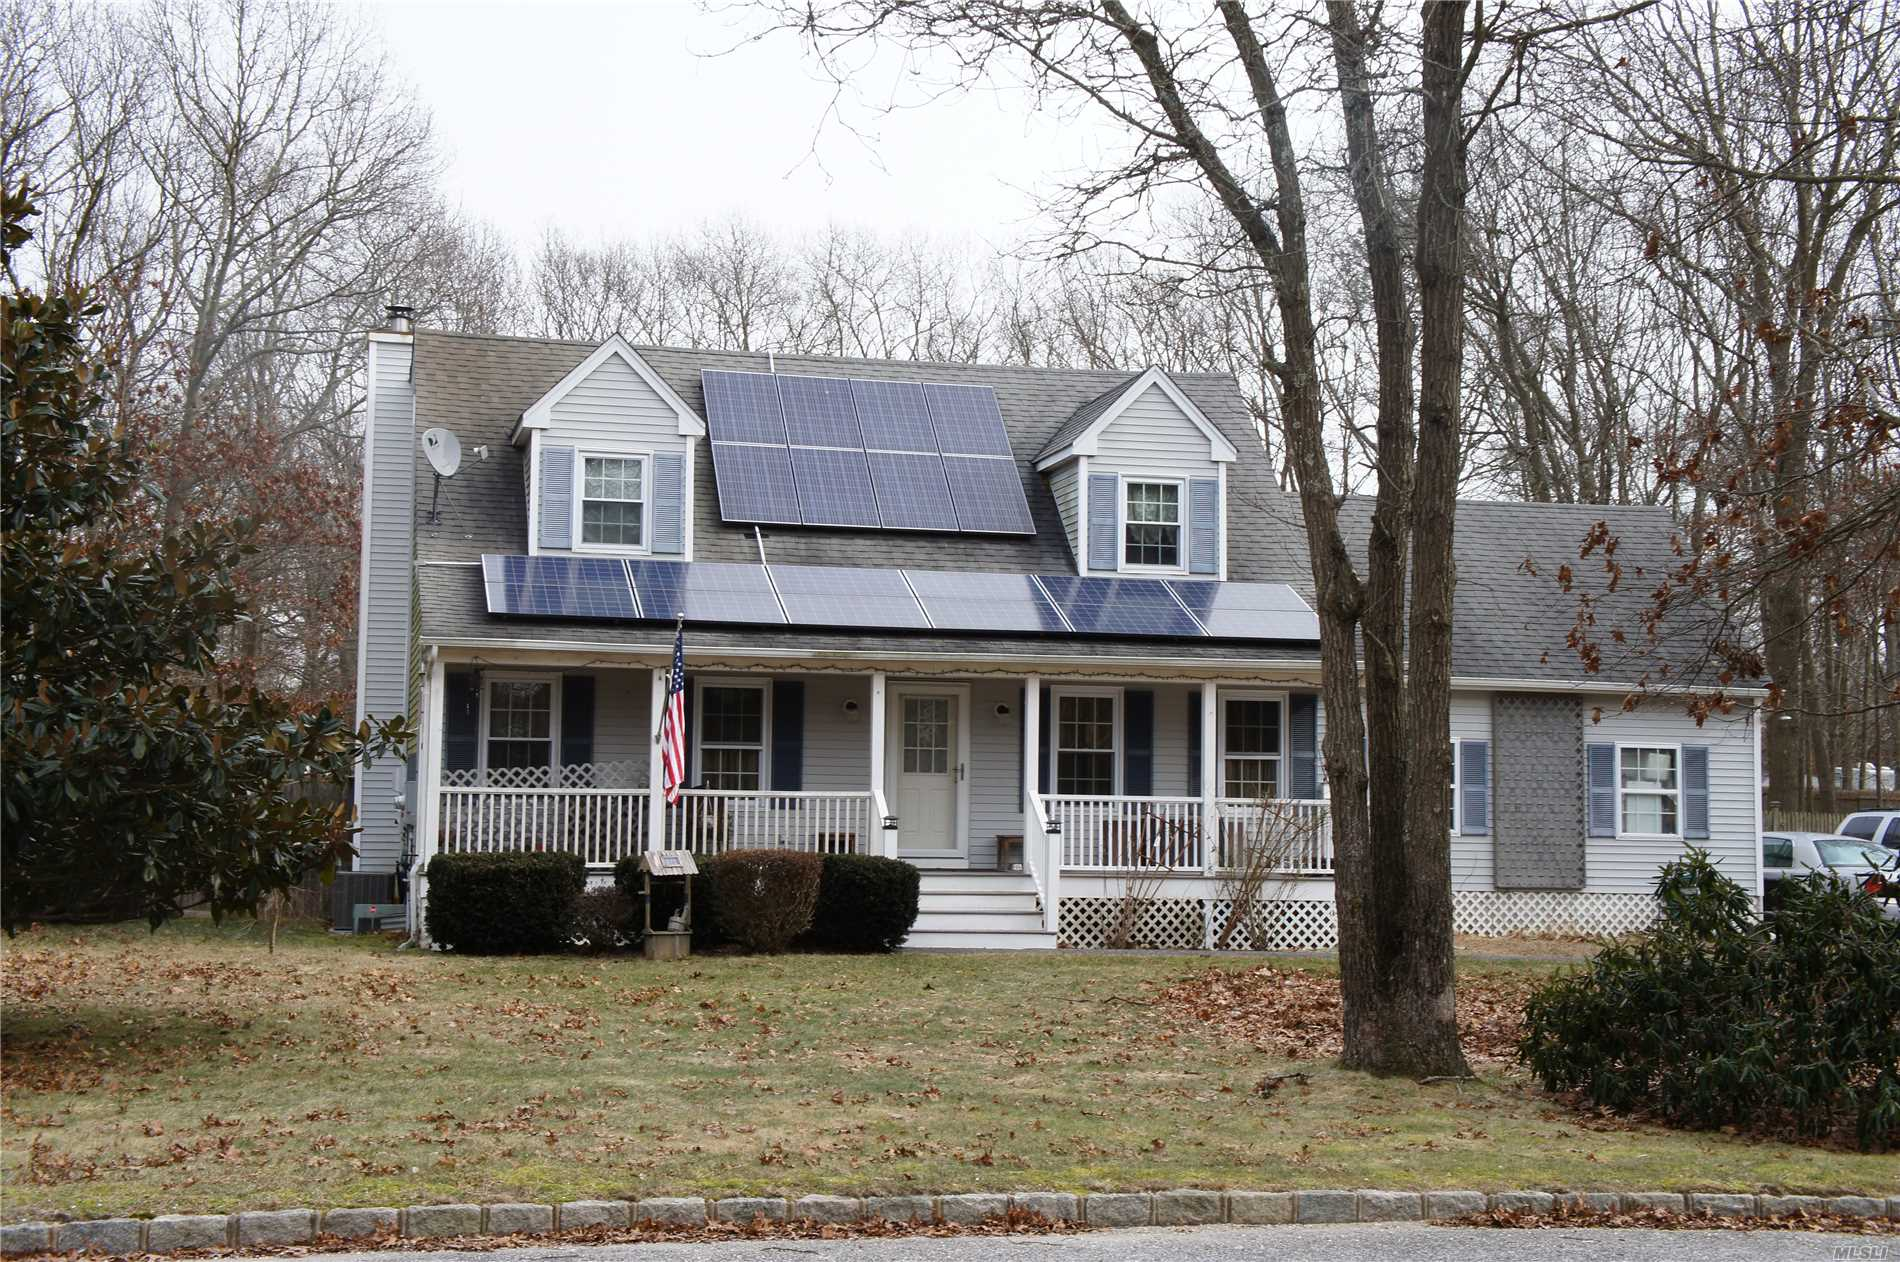 3 Bedroom Cape In The Desirable Center Moriches Area. 20X20 Brazilian Redwood Deck W/ Cedar Railings. Front Porch W/ Pvc Railing And Trex Flooring. Hurricane Proof Widows And Screens W/ Lifetime Warranty. Solar Panels W/ Warranty. Large Property In A Lovely Neighborhood. A Must See..